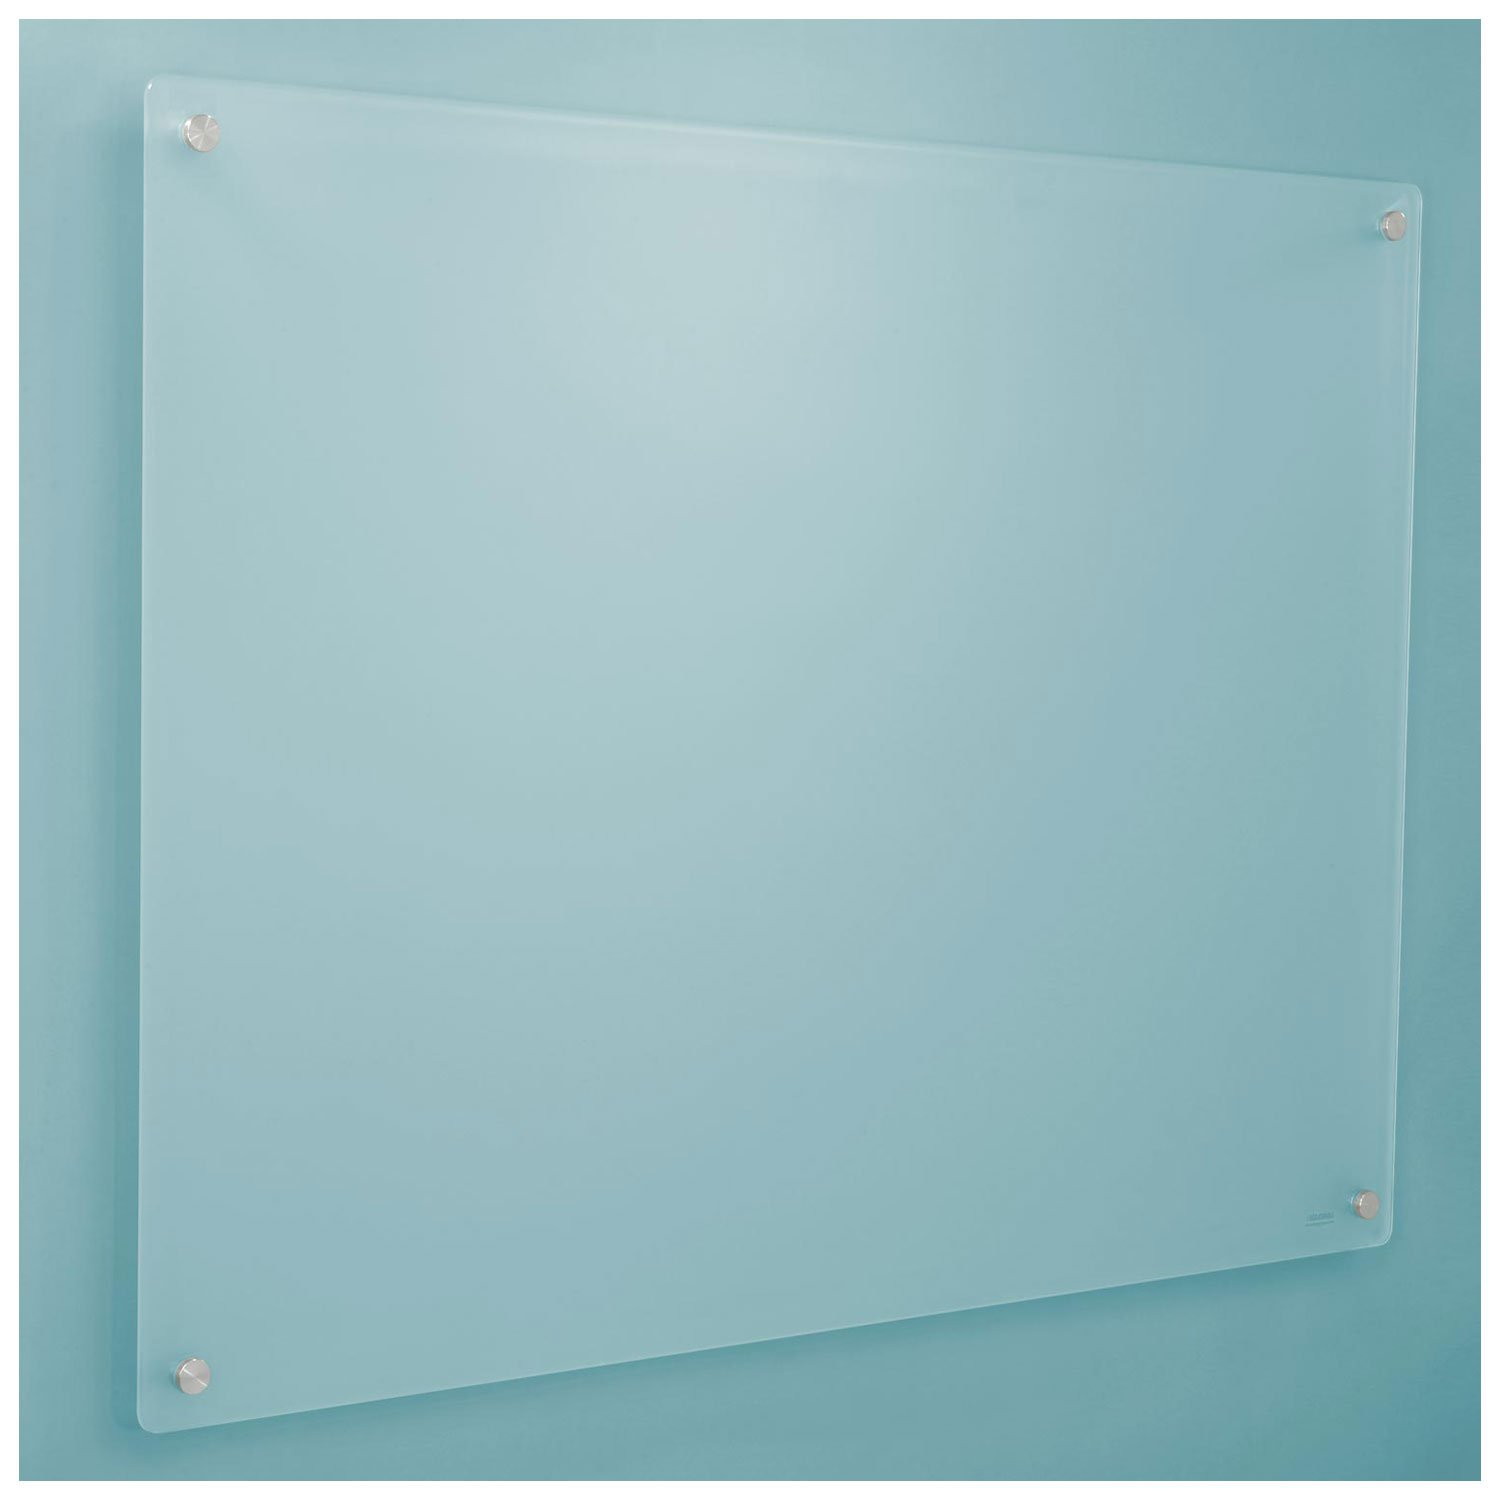 Dry Erase Board - Frosted Glass, 48 x 36 by Industrial Supplies